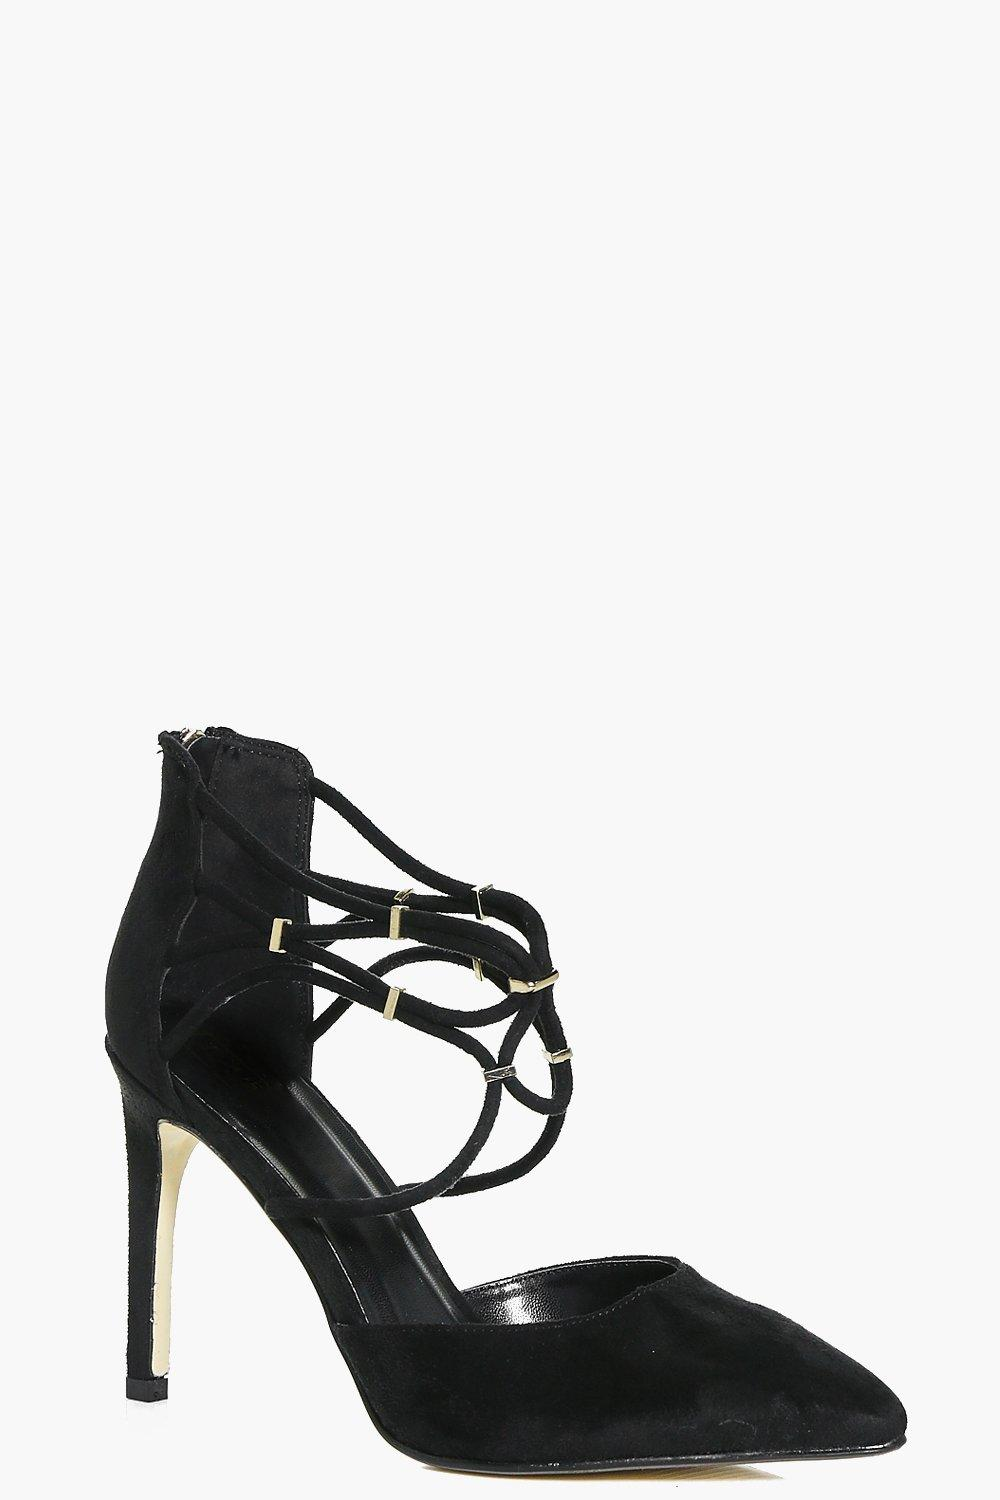 Iris Lace Up Pointed Court